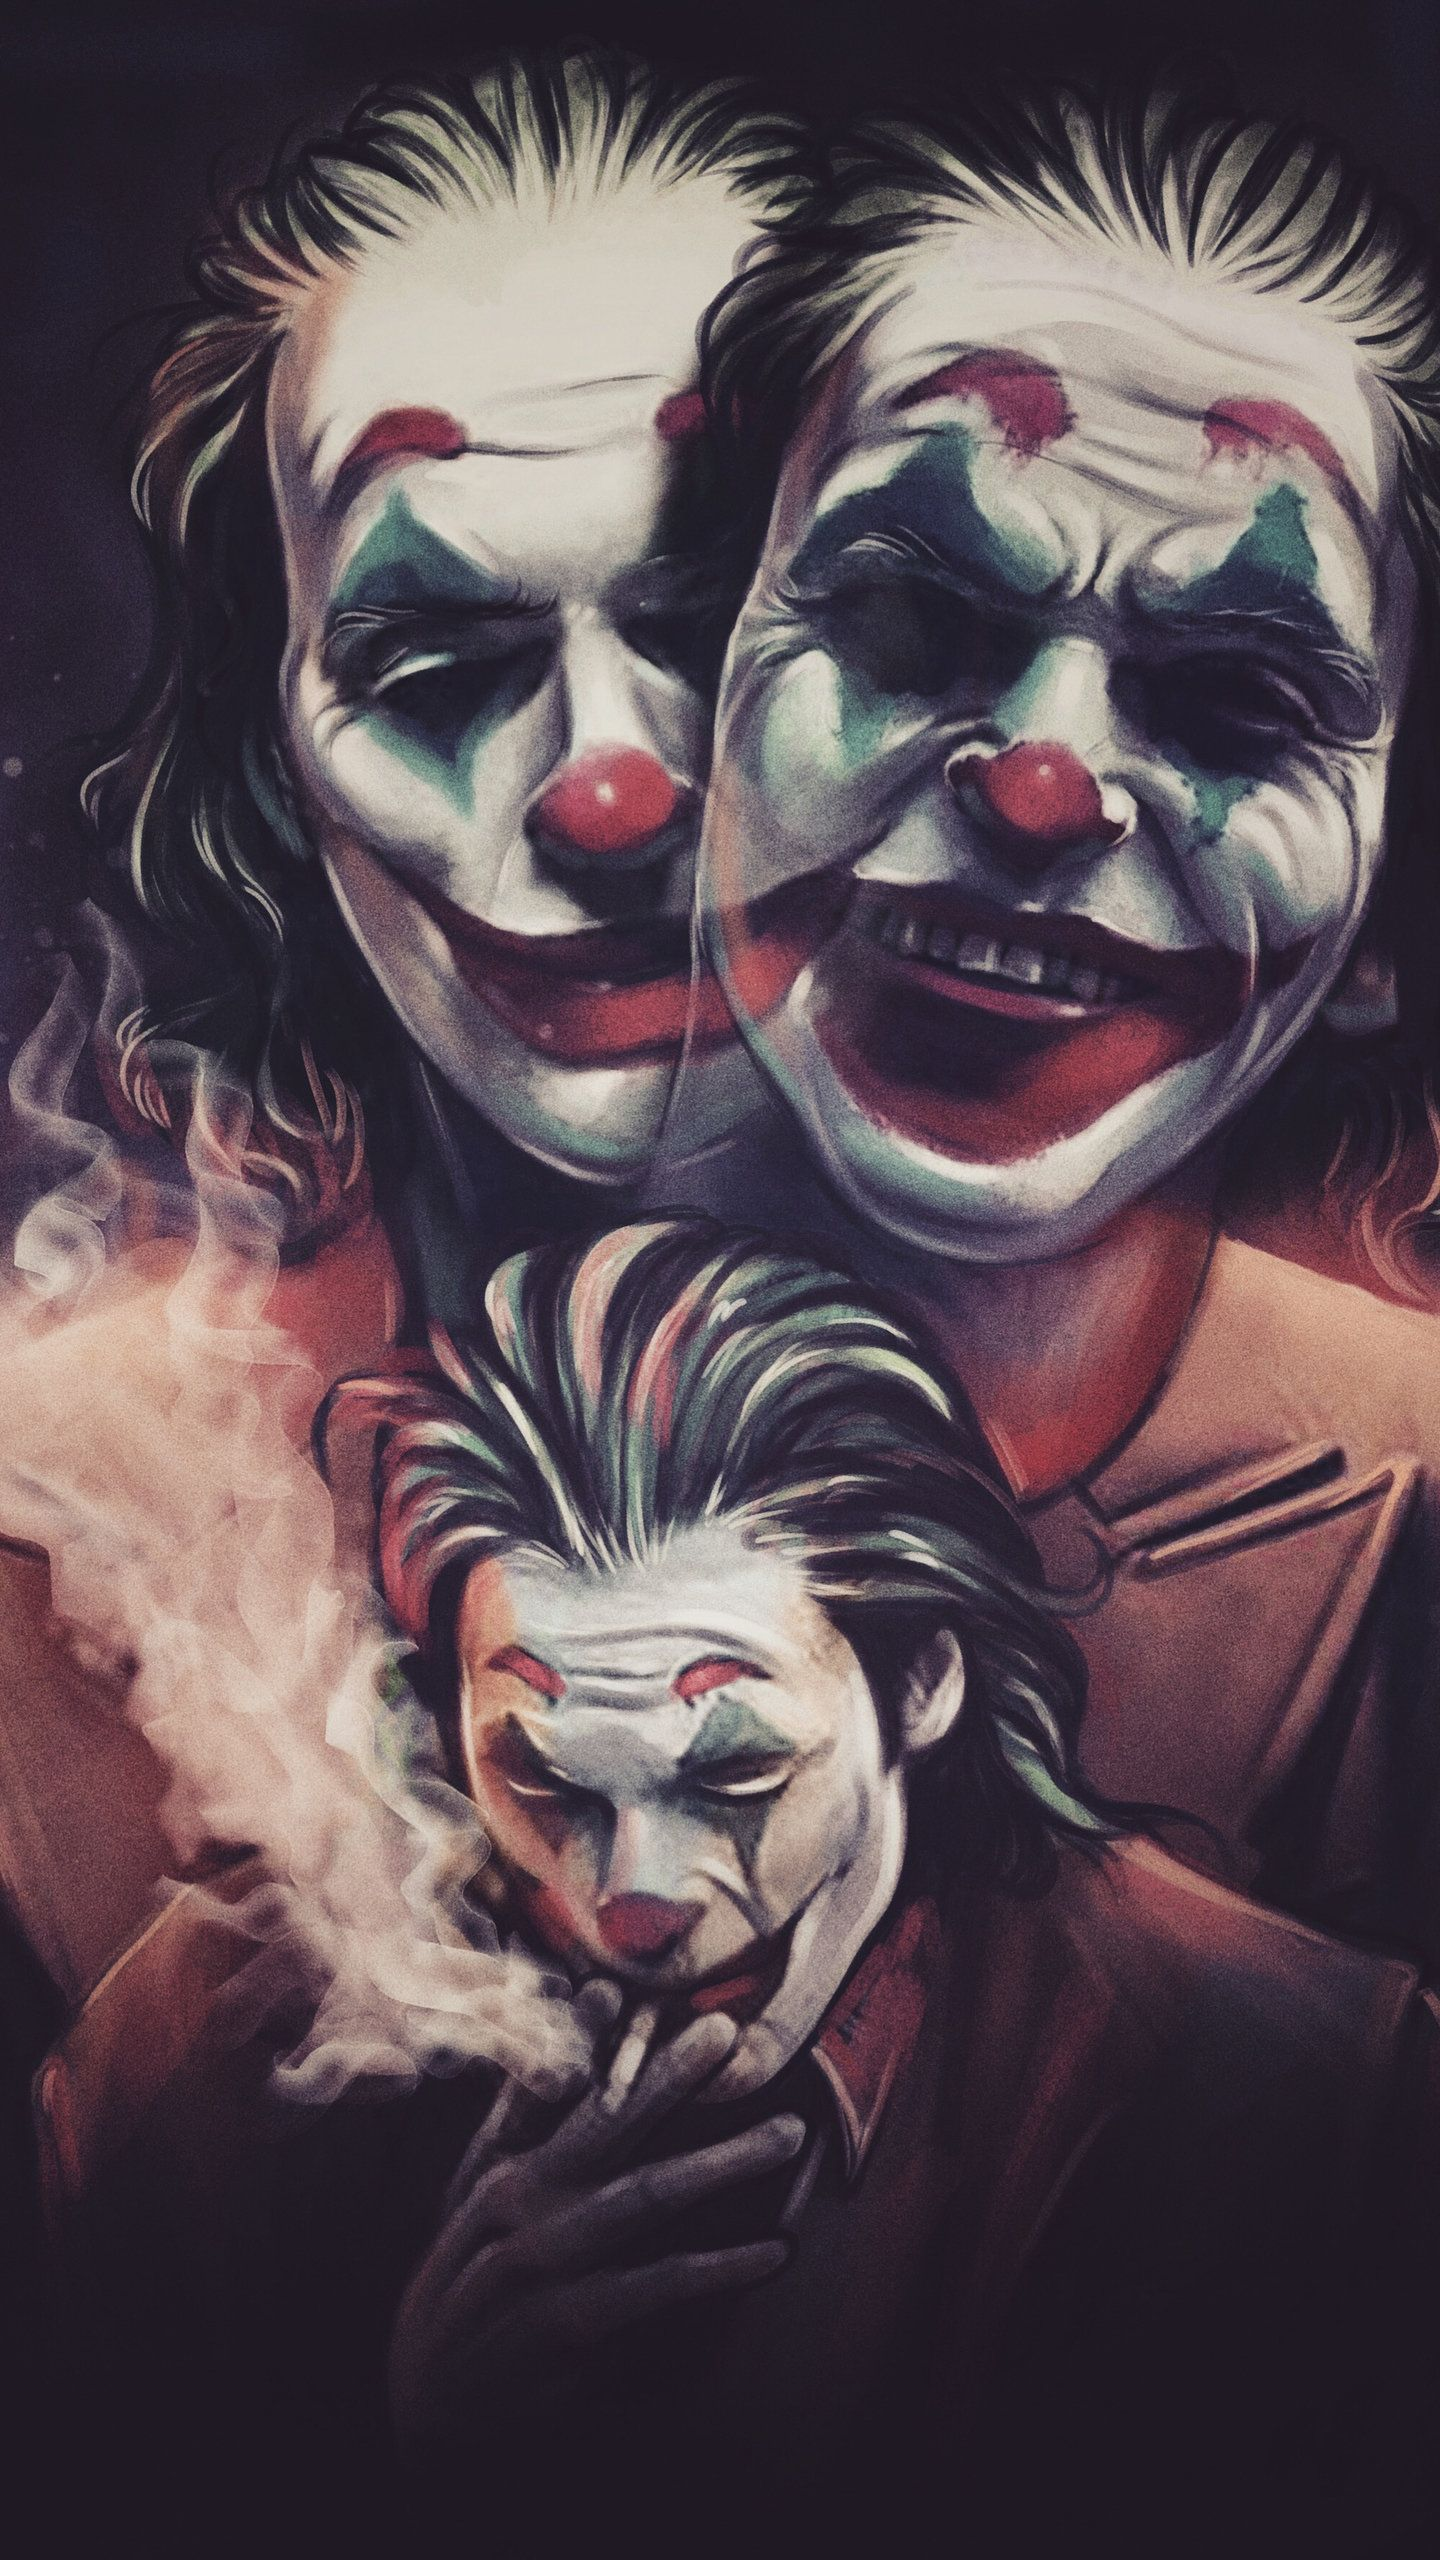 Joker Smoker Art Hd Superheroes Wallpapers Photos And